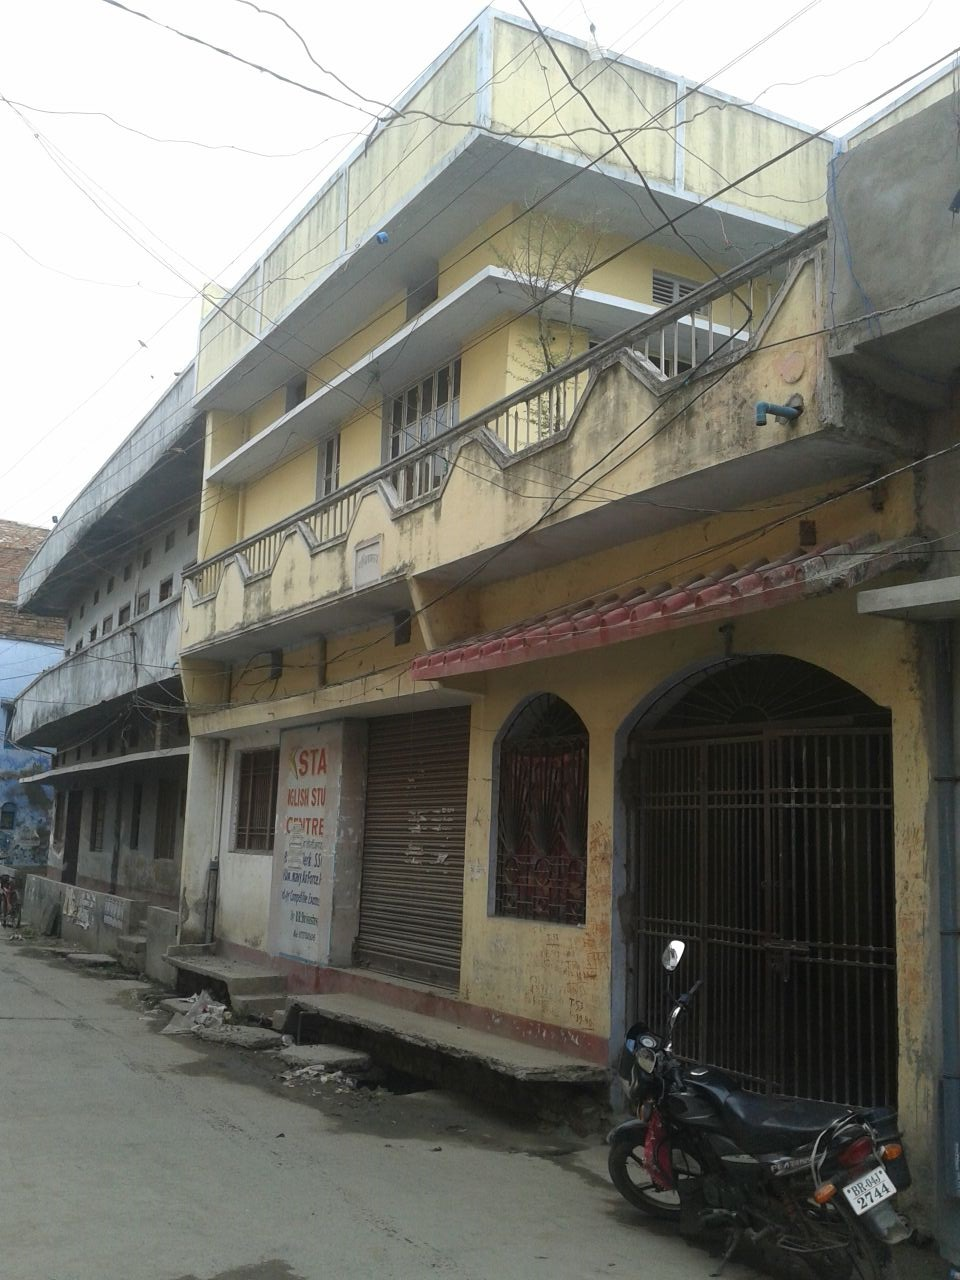 2 Storey House In 2 Kottah Land In Chhapra Mawna Mishra Toli